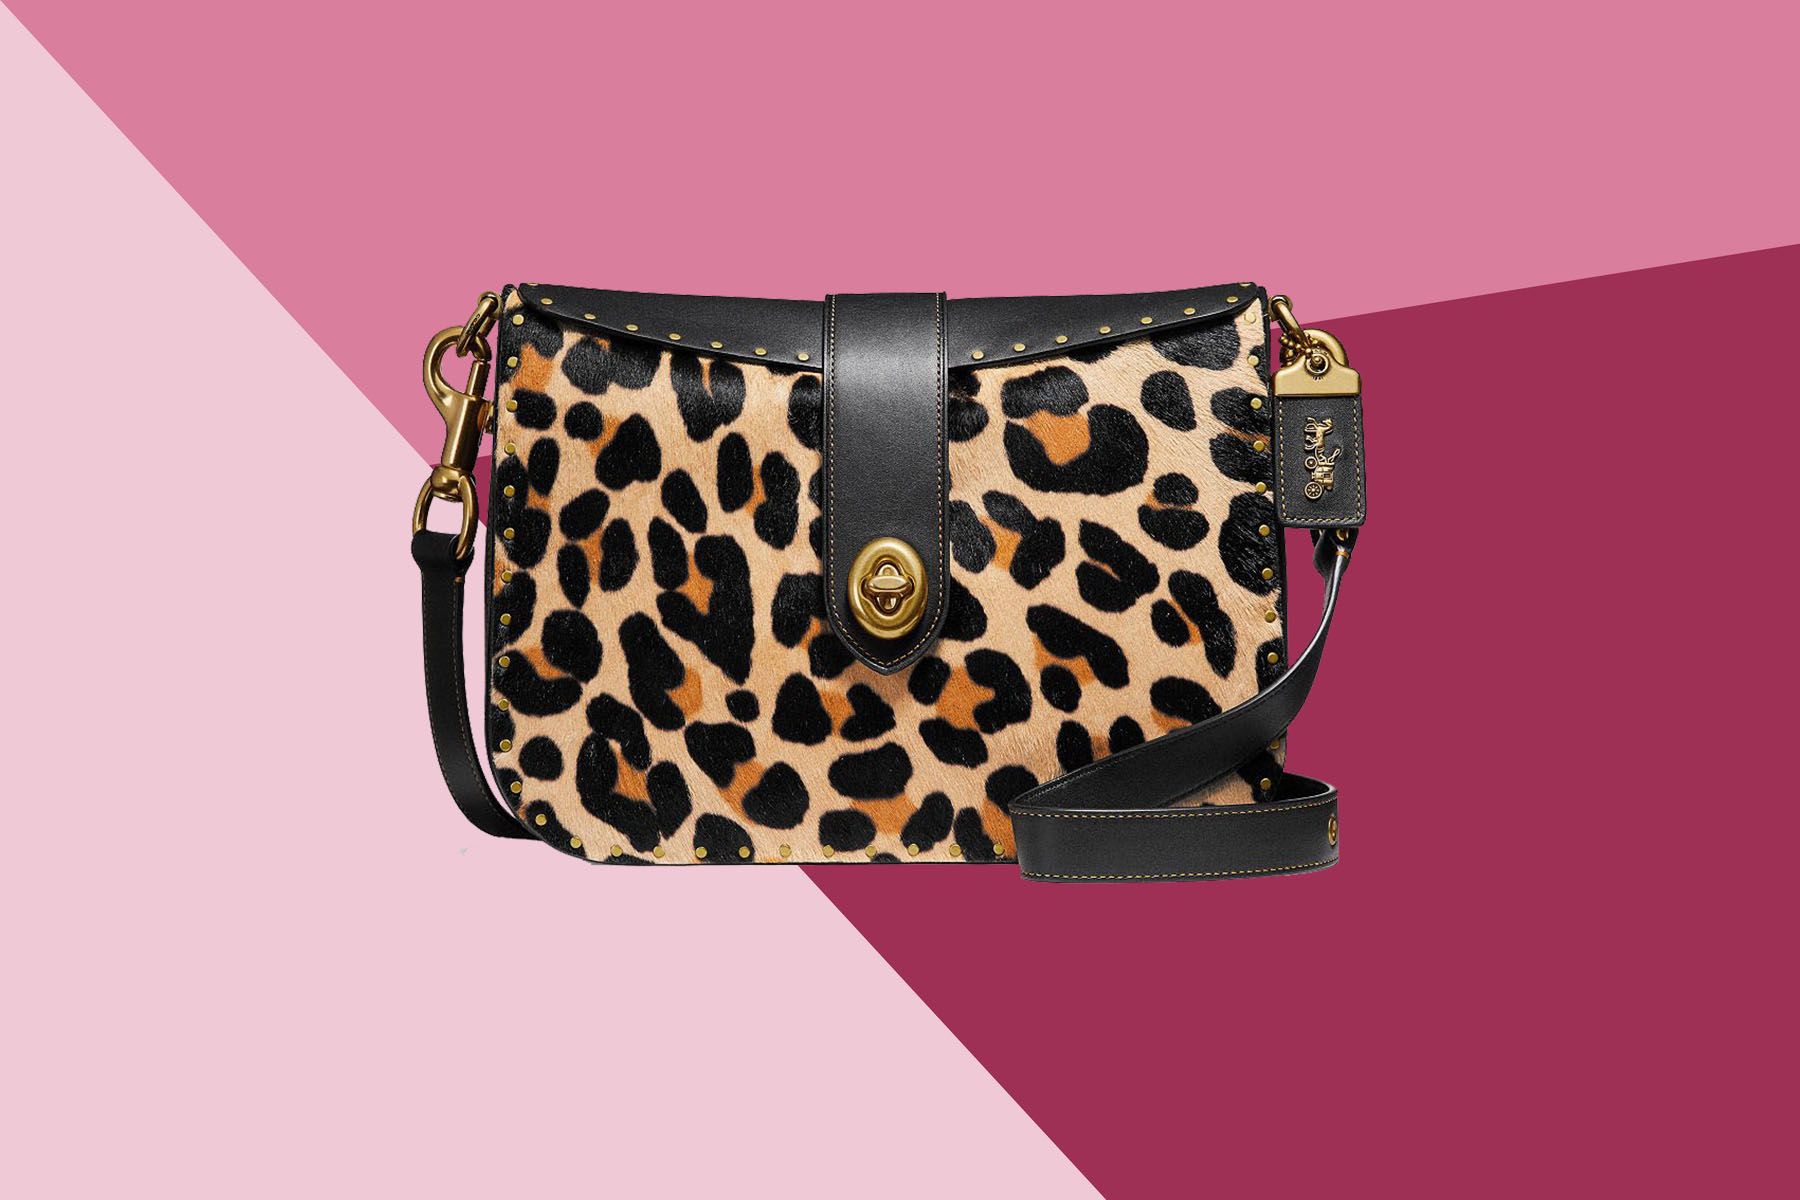 Best Handbags From Coach s Winter Sale - Coach Handbags On Sale   Real  Simple 941bff7a49